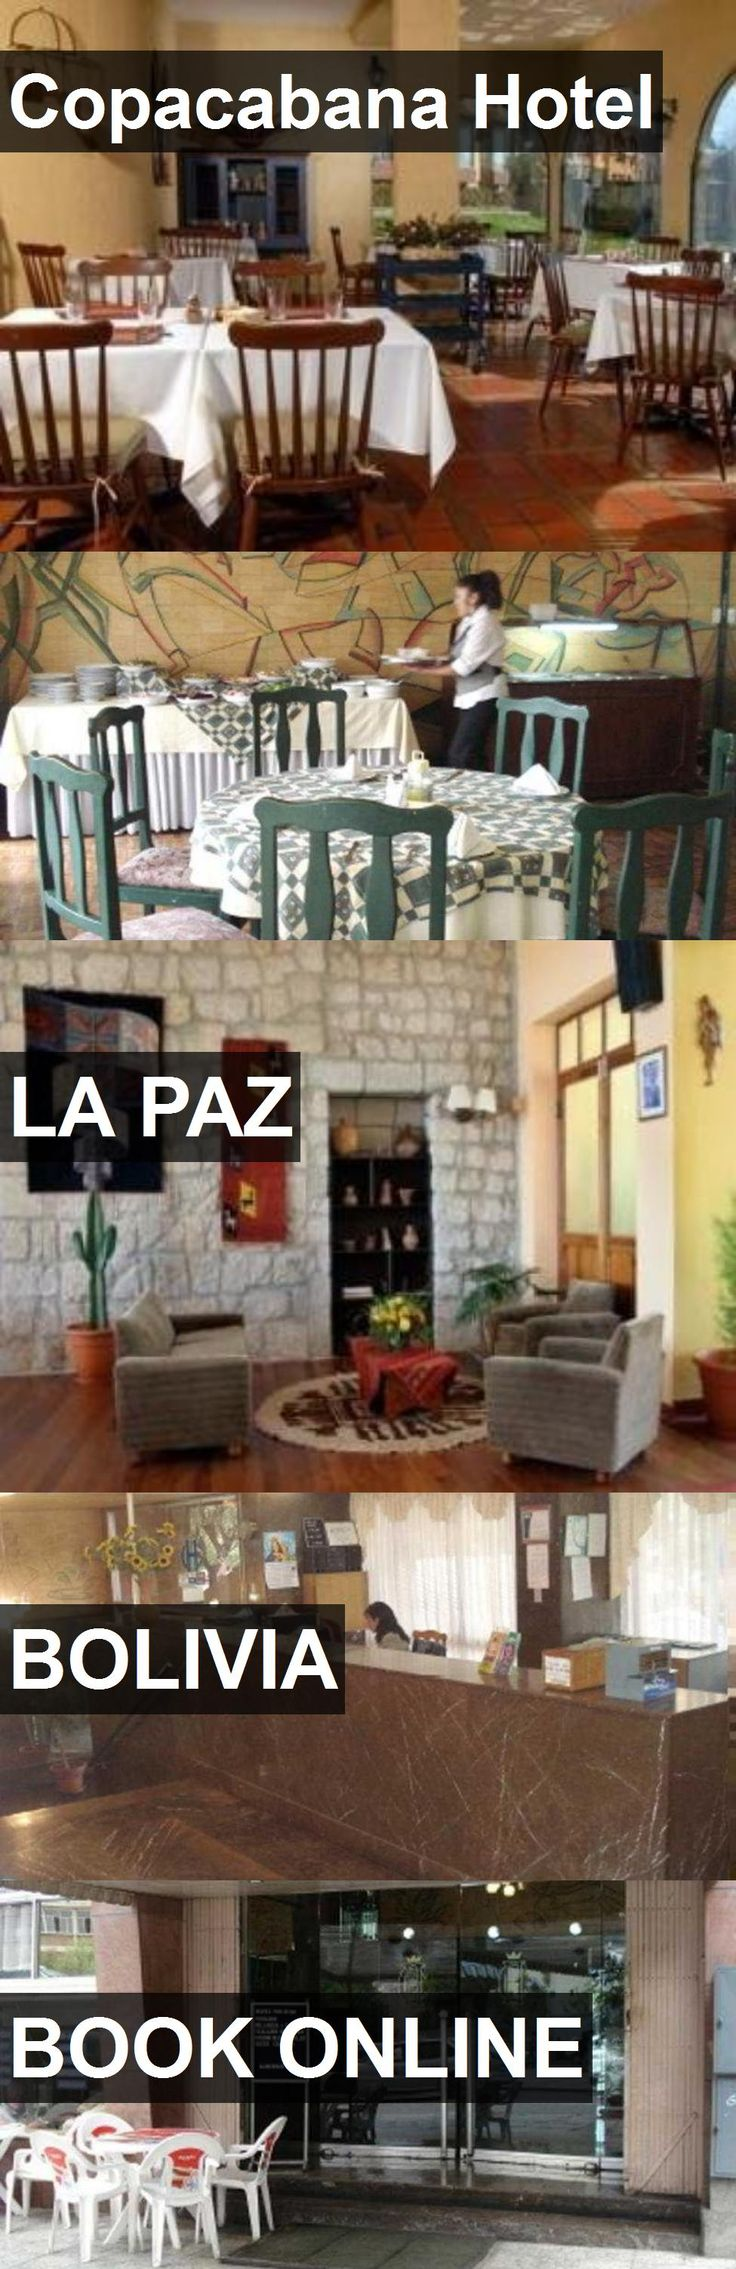 Hotel Copacabana Hotel in La Paz, Bolivia. For more information, photos, reviews and best prices please follow the link. #Bolivia #LaPaz #CopacabanaHotel #hotel #travel #vacation